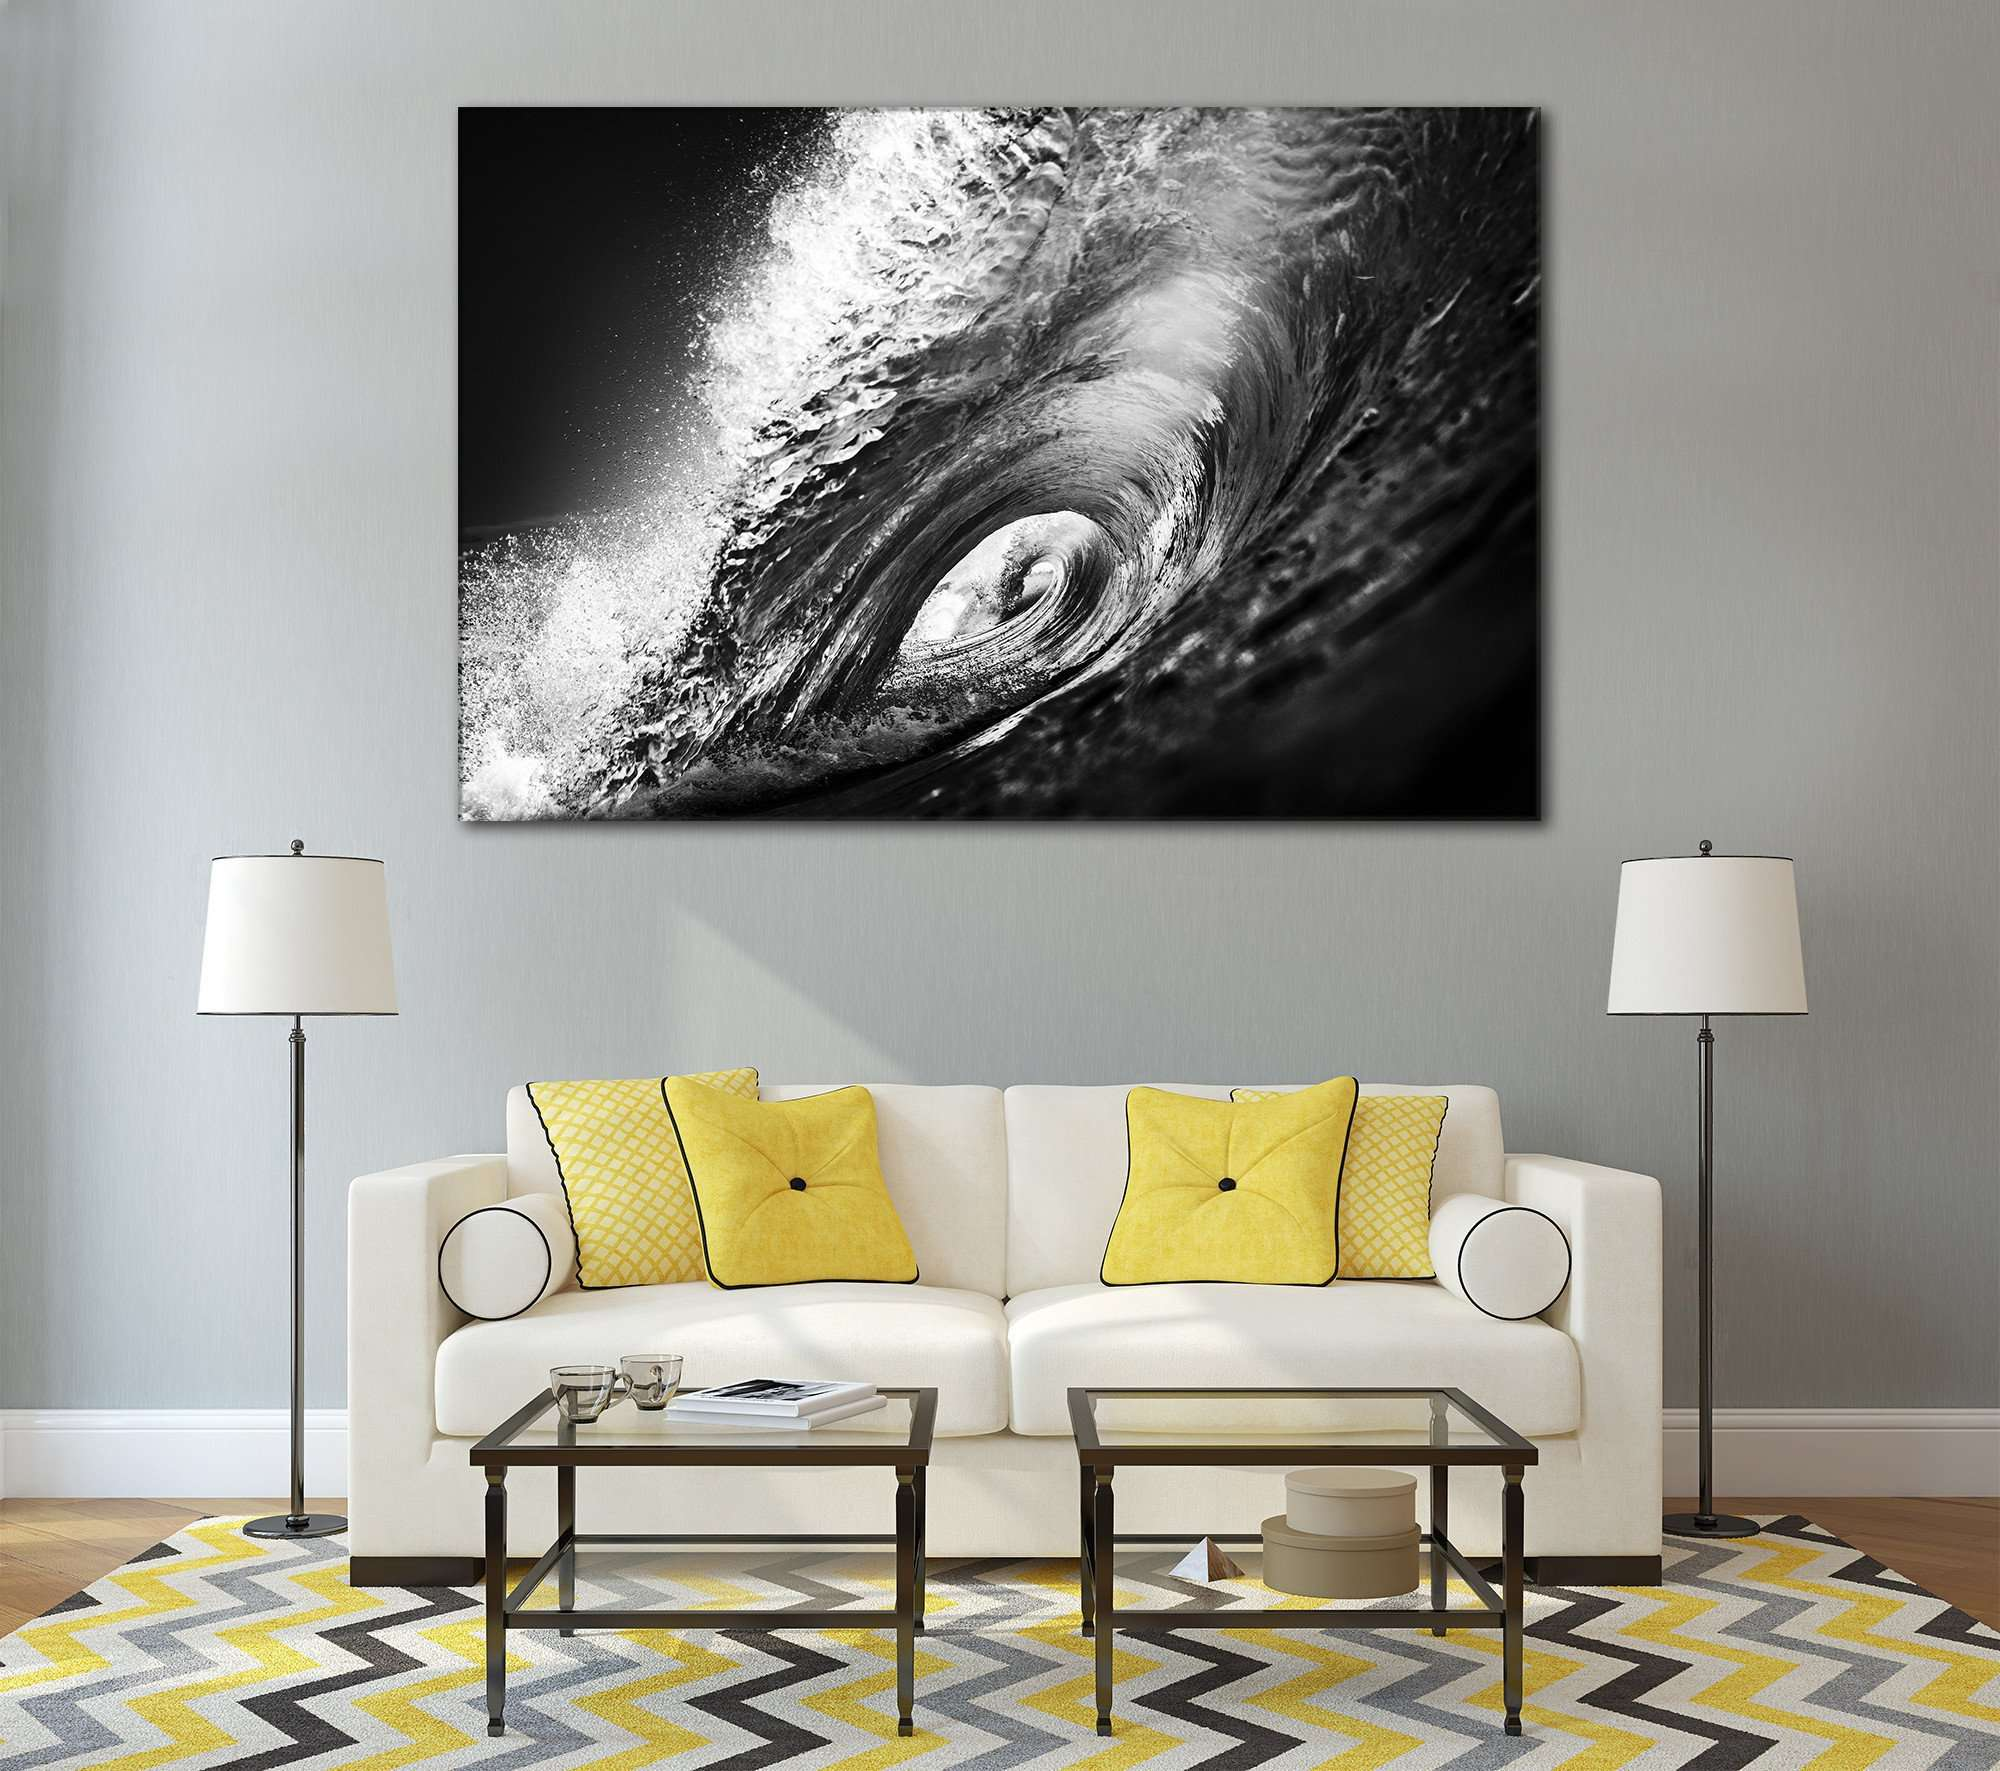 & Black u0026 White Wall Art at Zellart Canvas Arts